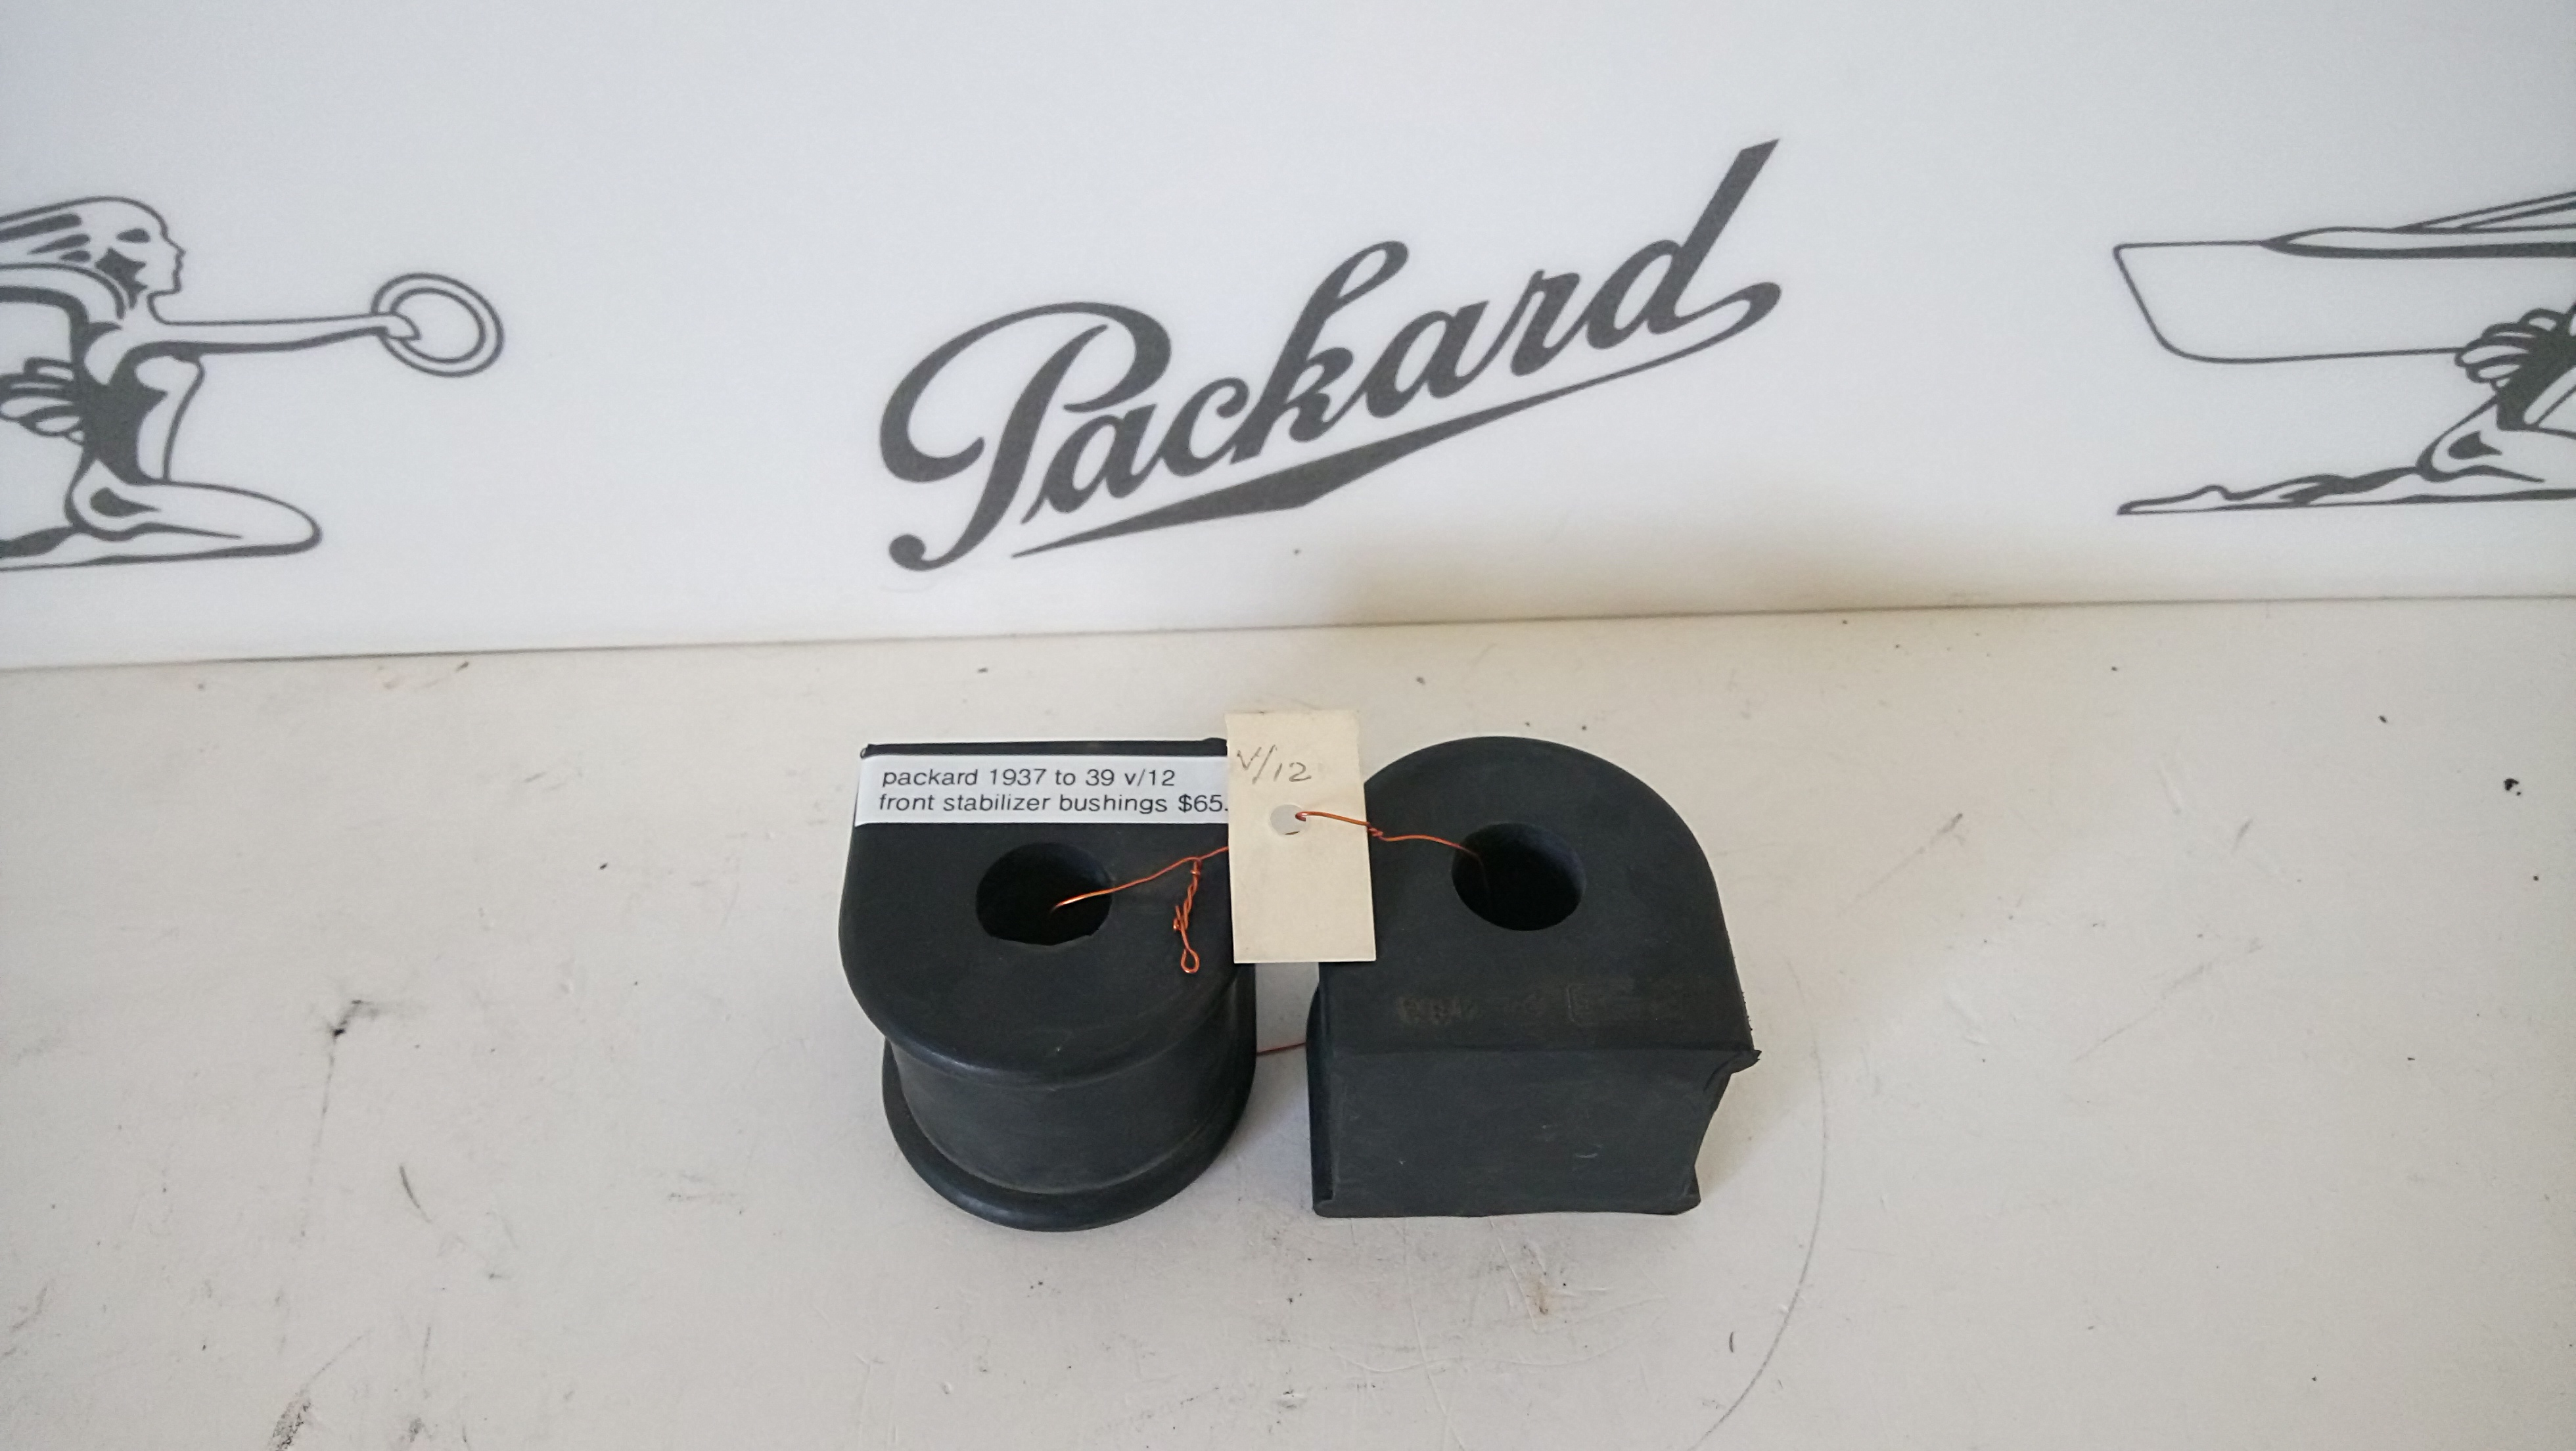 Tucsonpackard Packard Parts. 19371939 Packard V12 Front Stabilizer Bushings. Wiring. 1949 Packard Wiring Diagram For Gas Gauge At Scoala.co